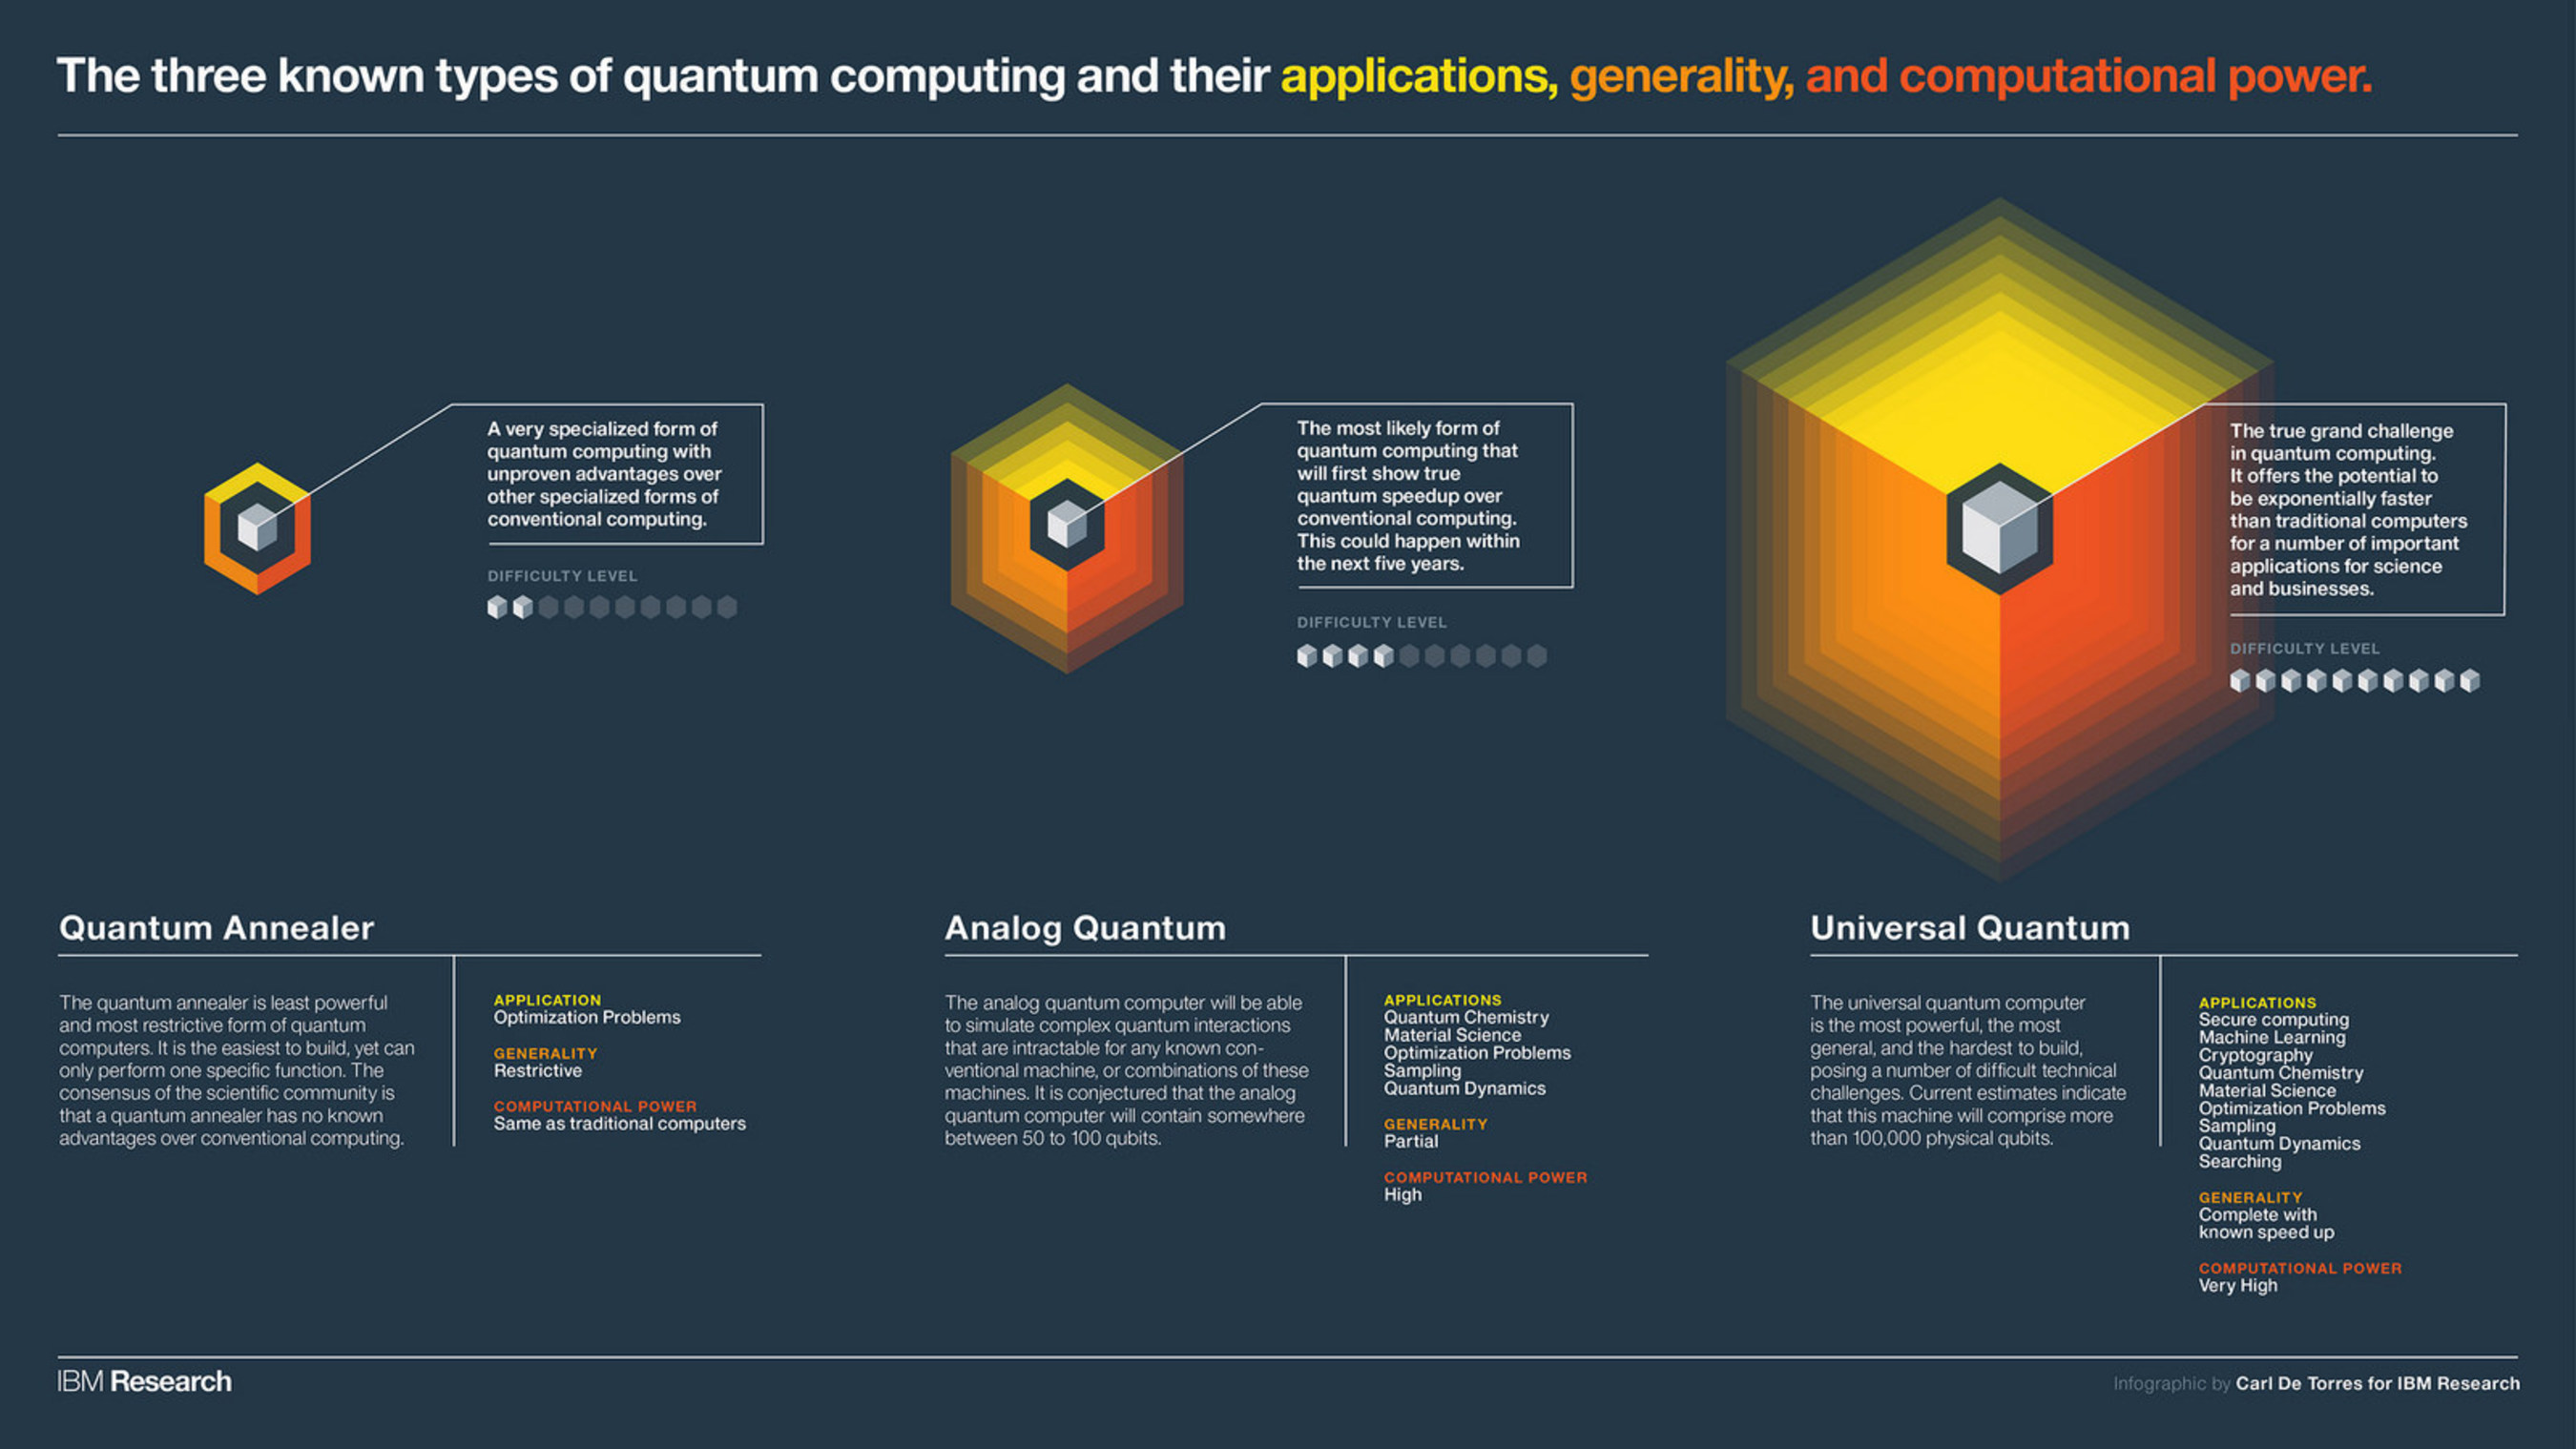 IBM Infographic - The three known types of quantum computing and their applications, generality, and computational power.